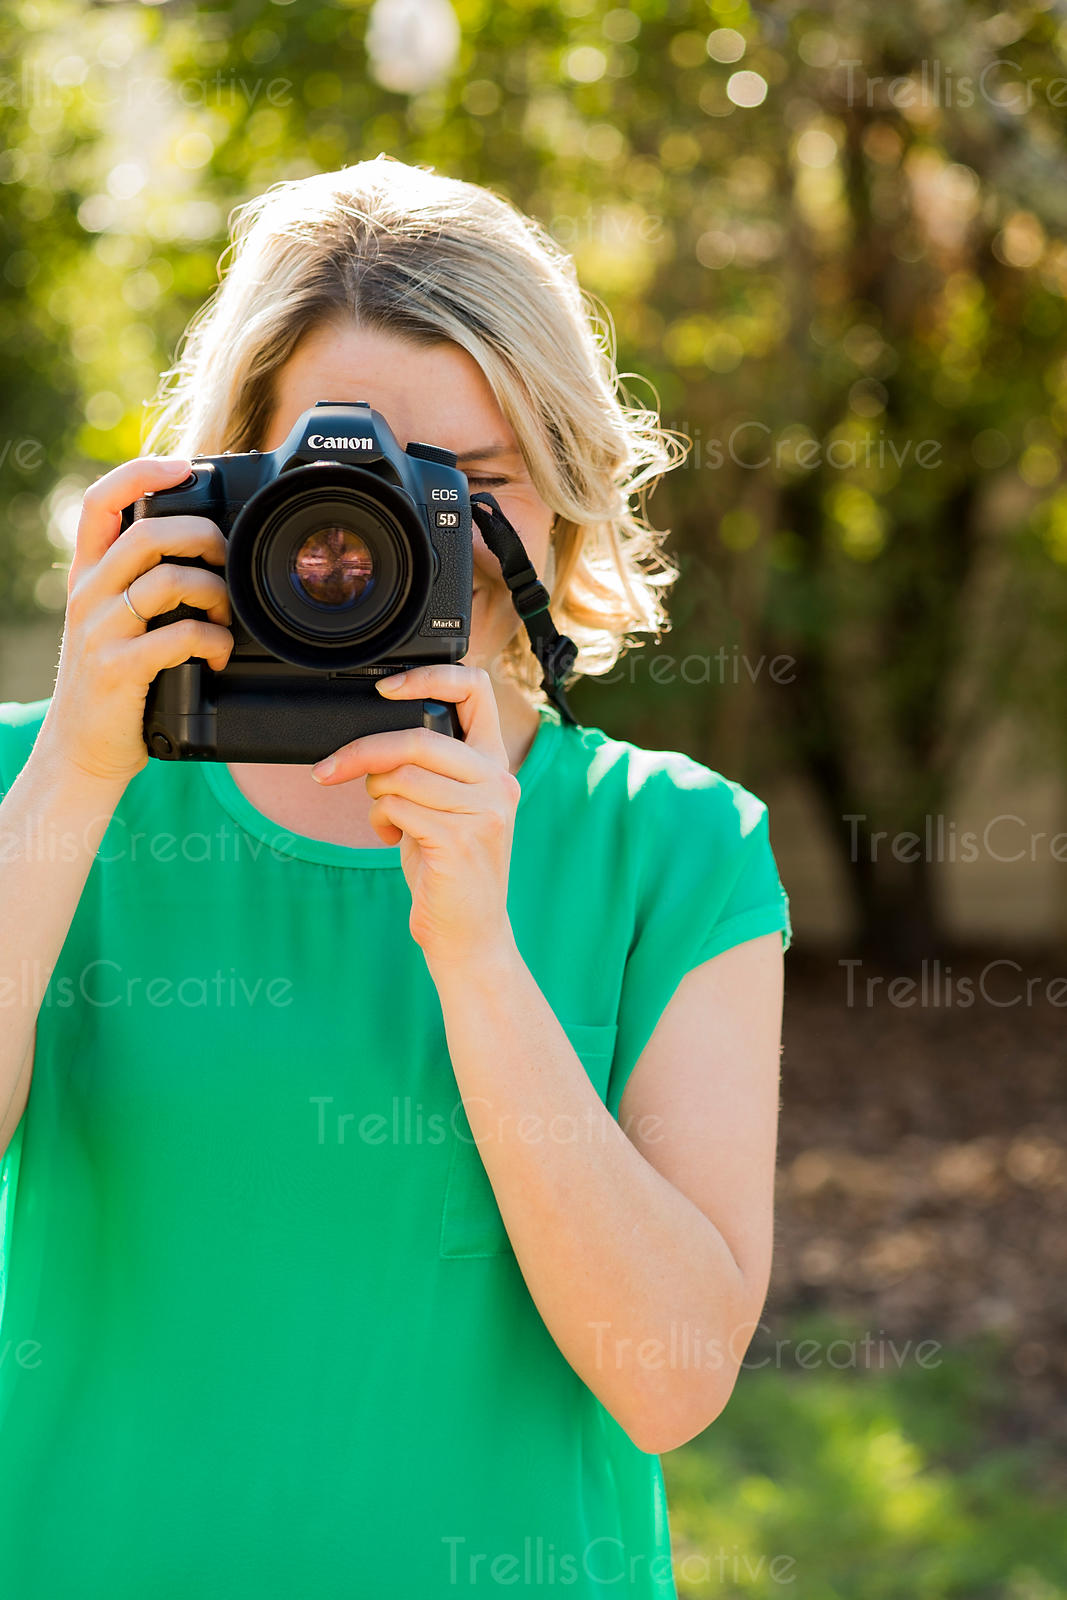 Pretty blonde woman holding a camera